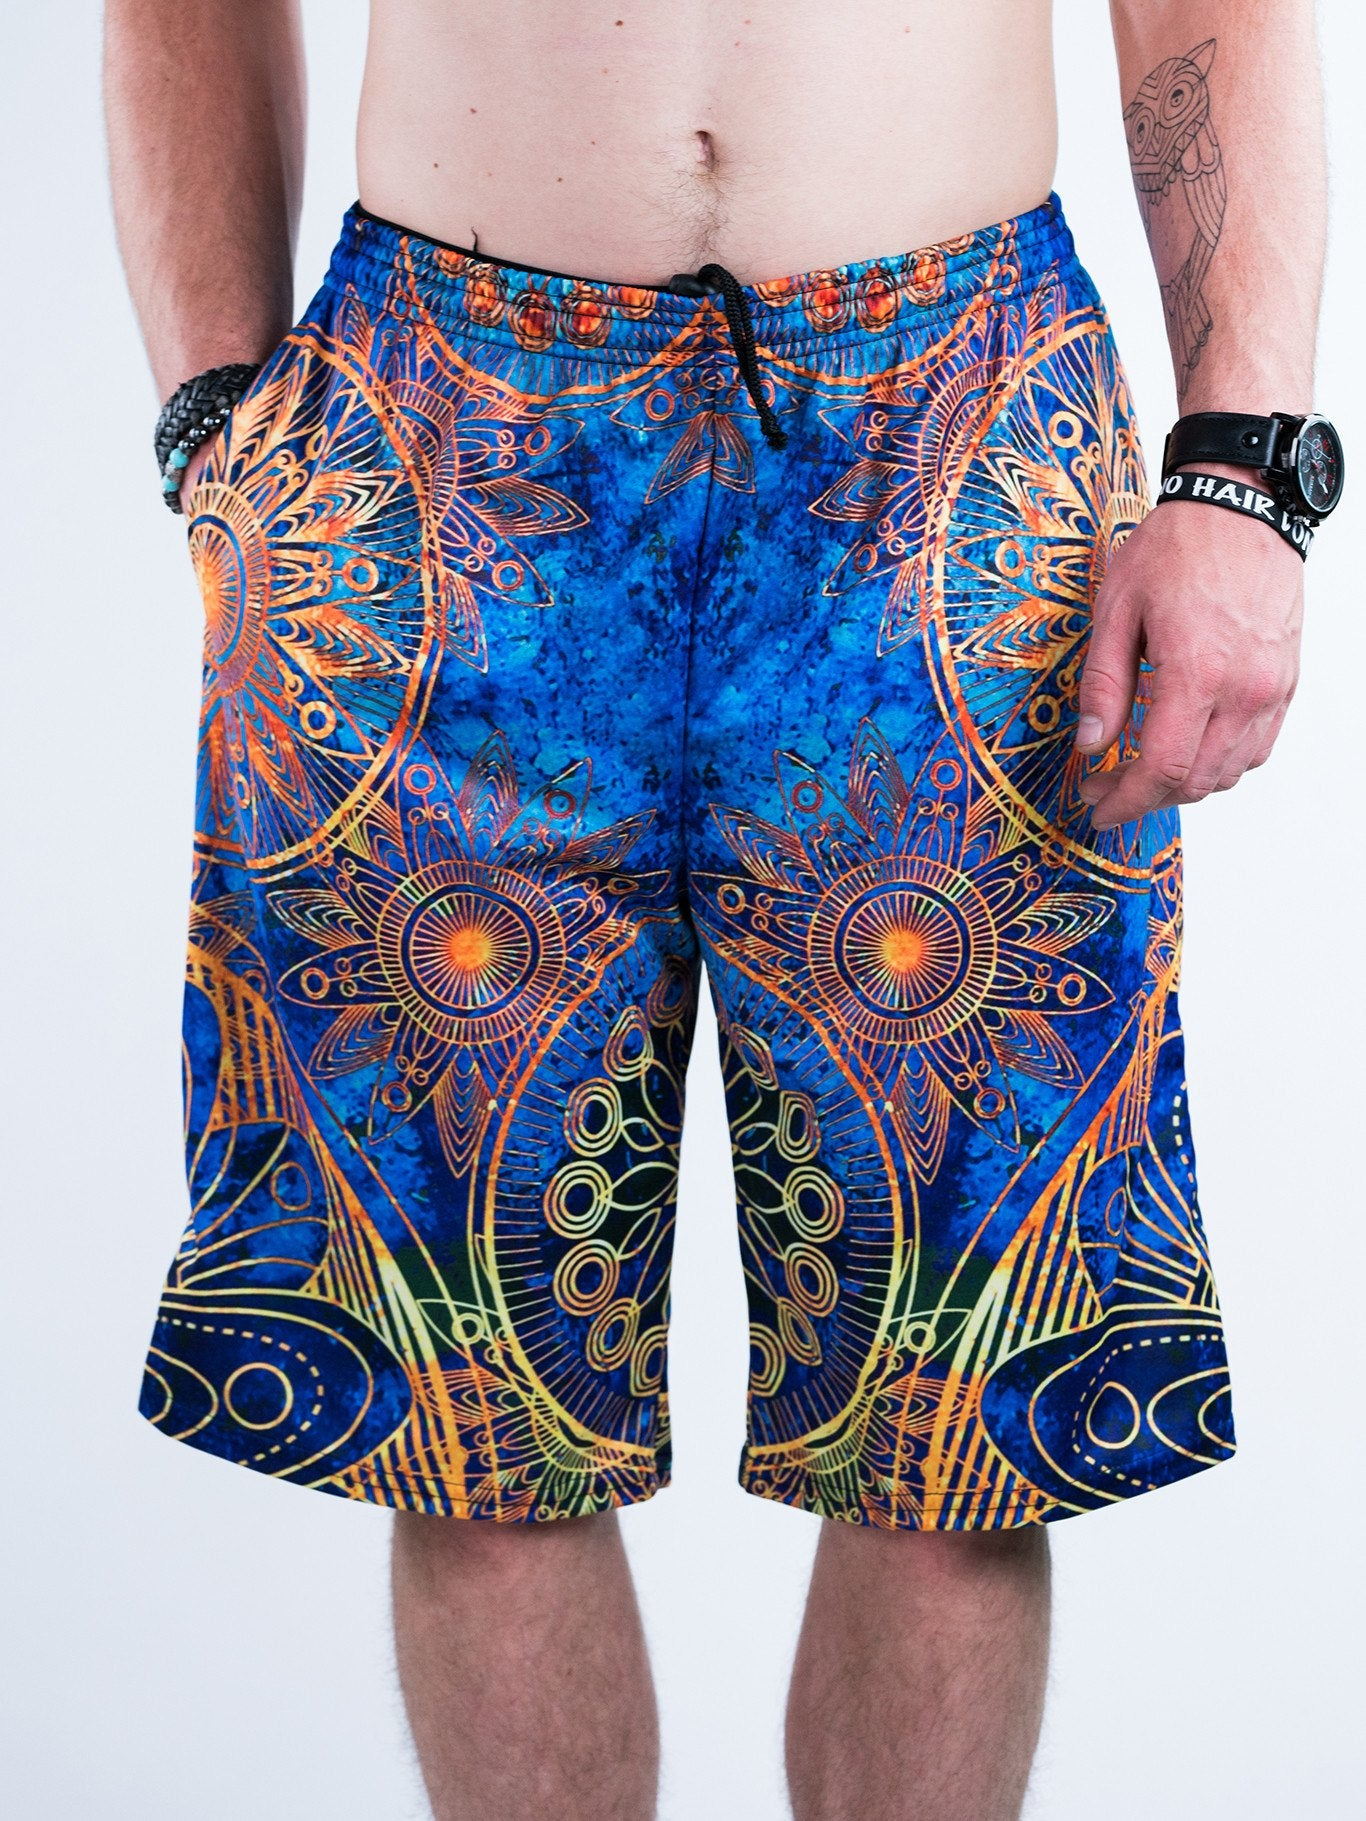 Gold Boho Shorts Mens Shorts T6